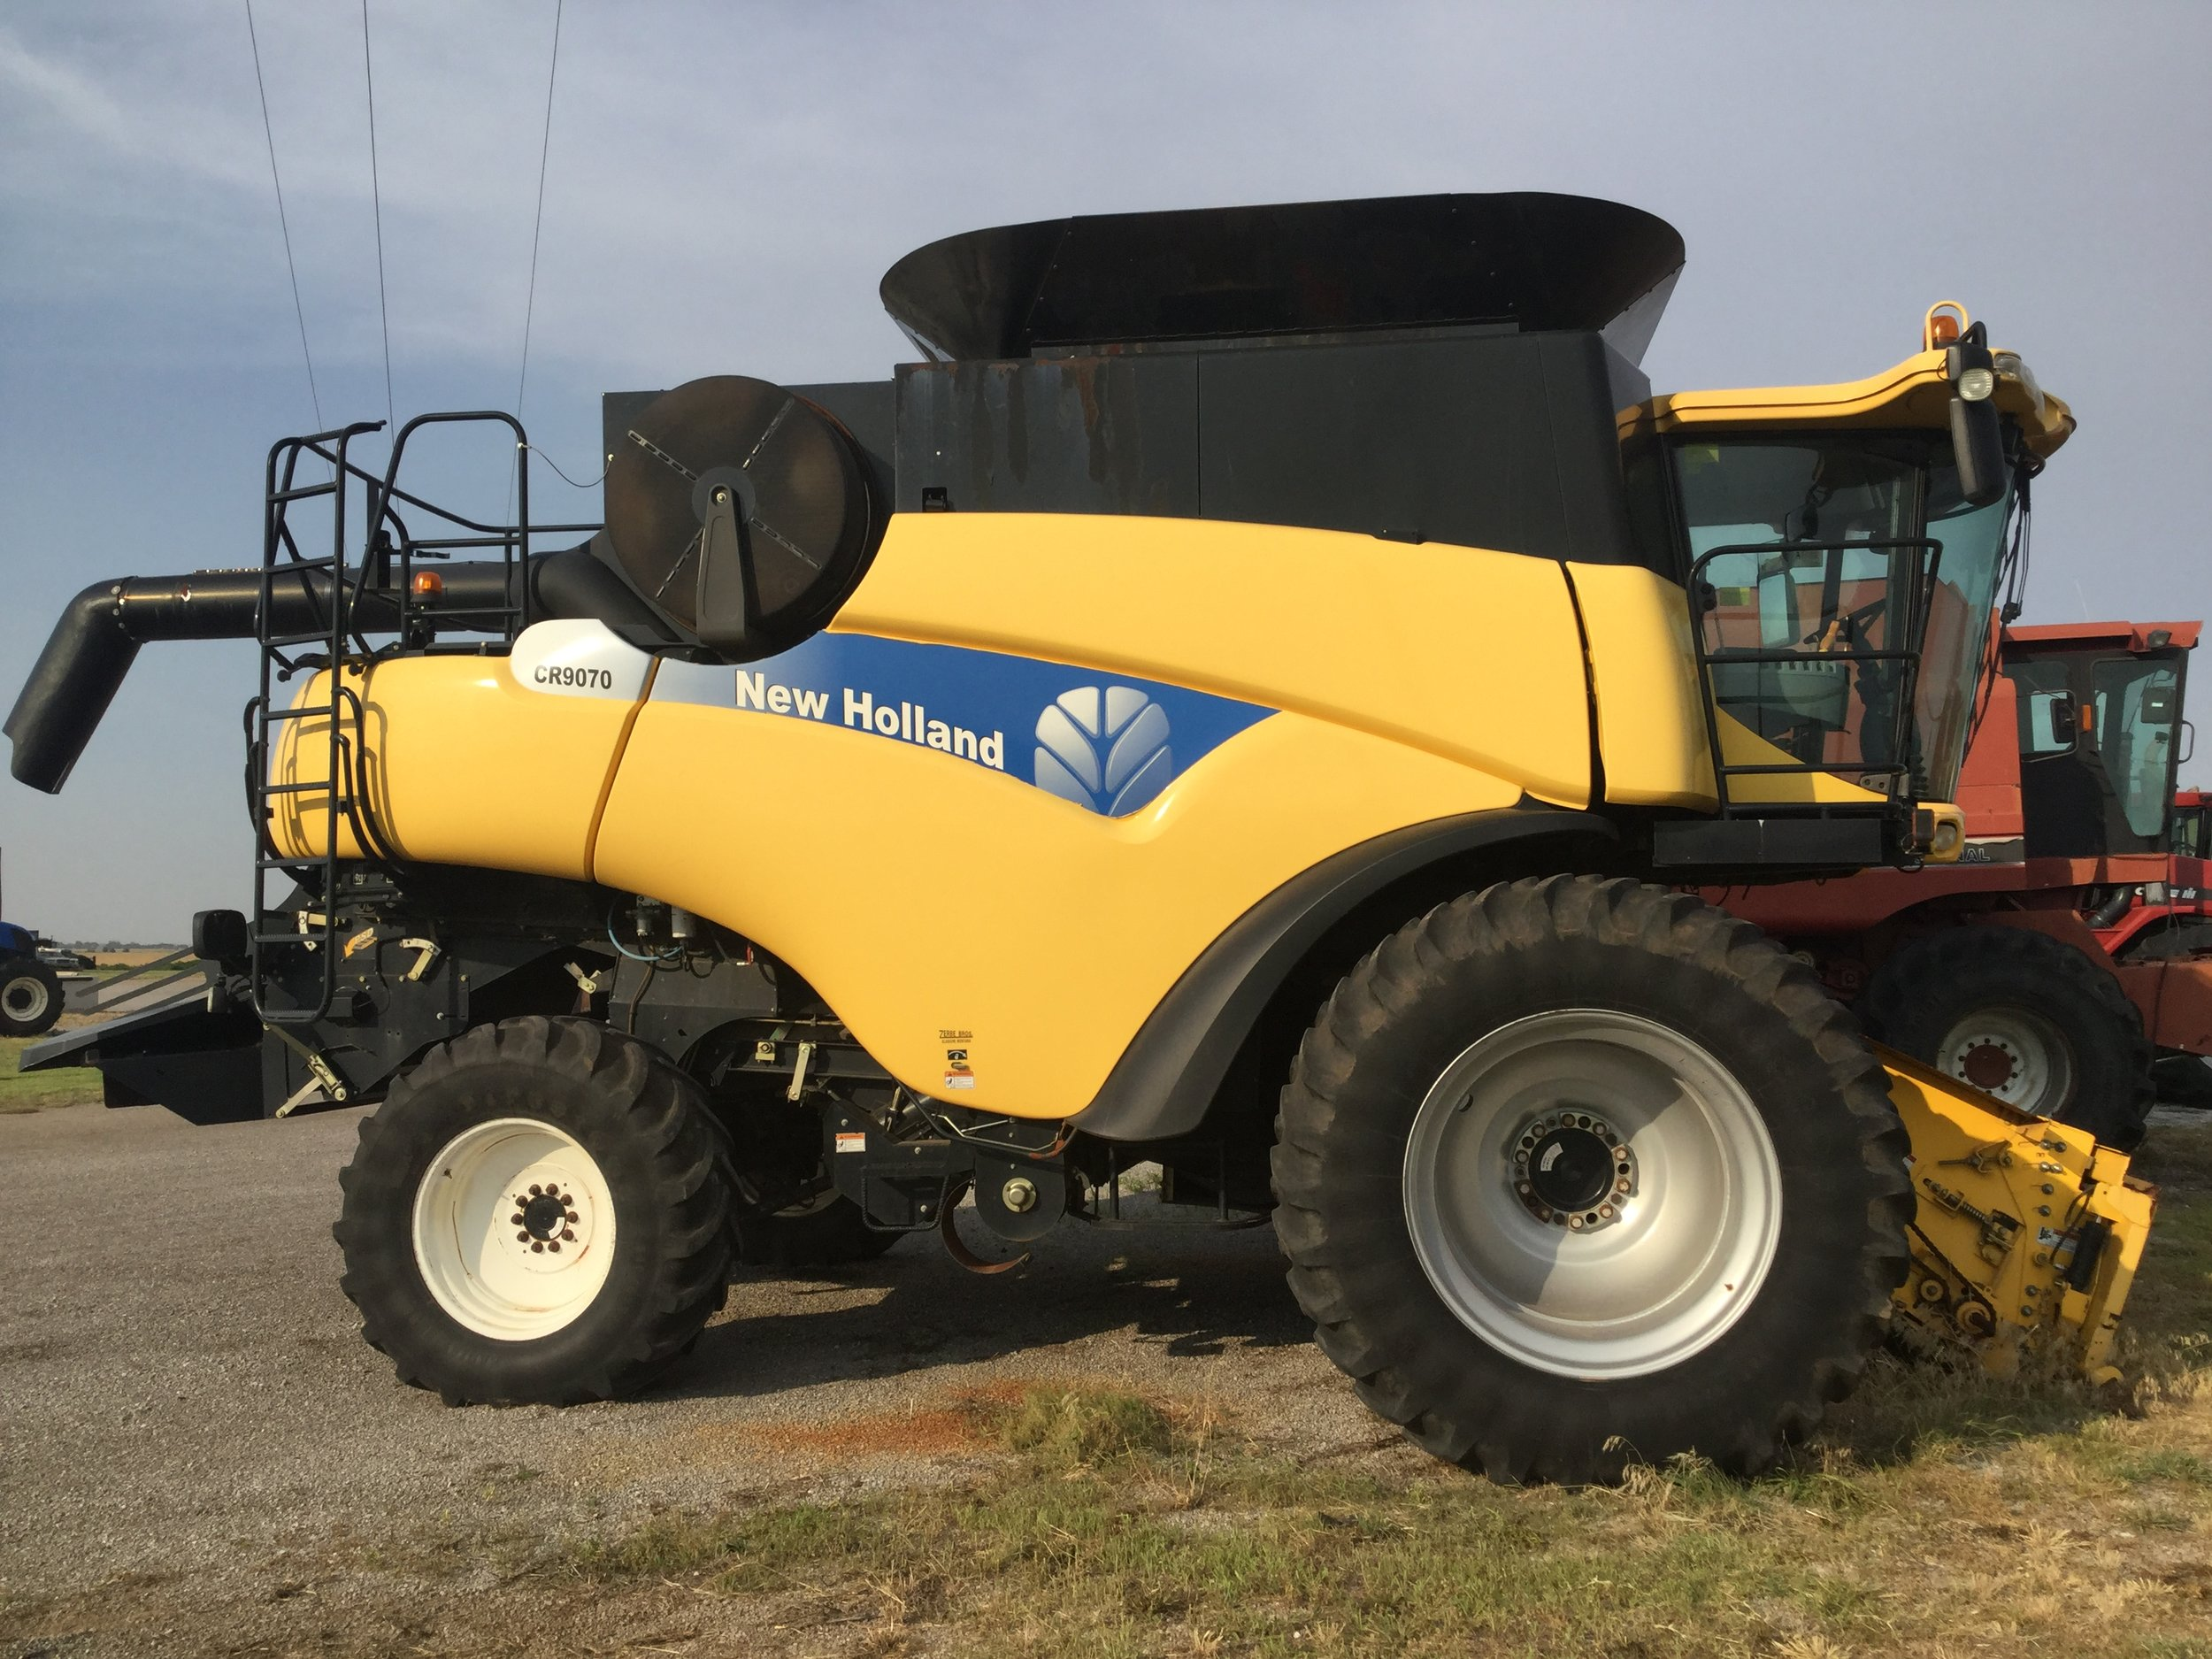 New Holland 9070 combine (1367 sep hrs.) - $90,000